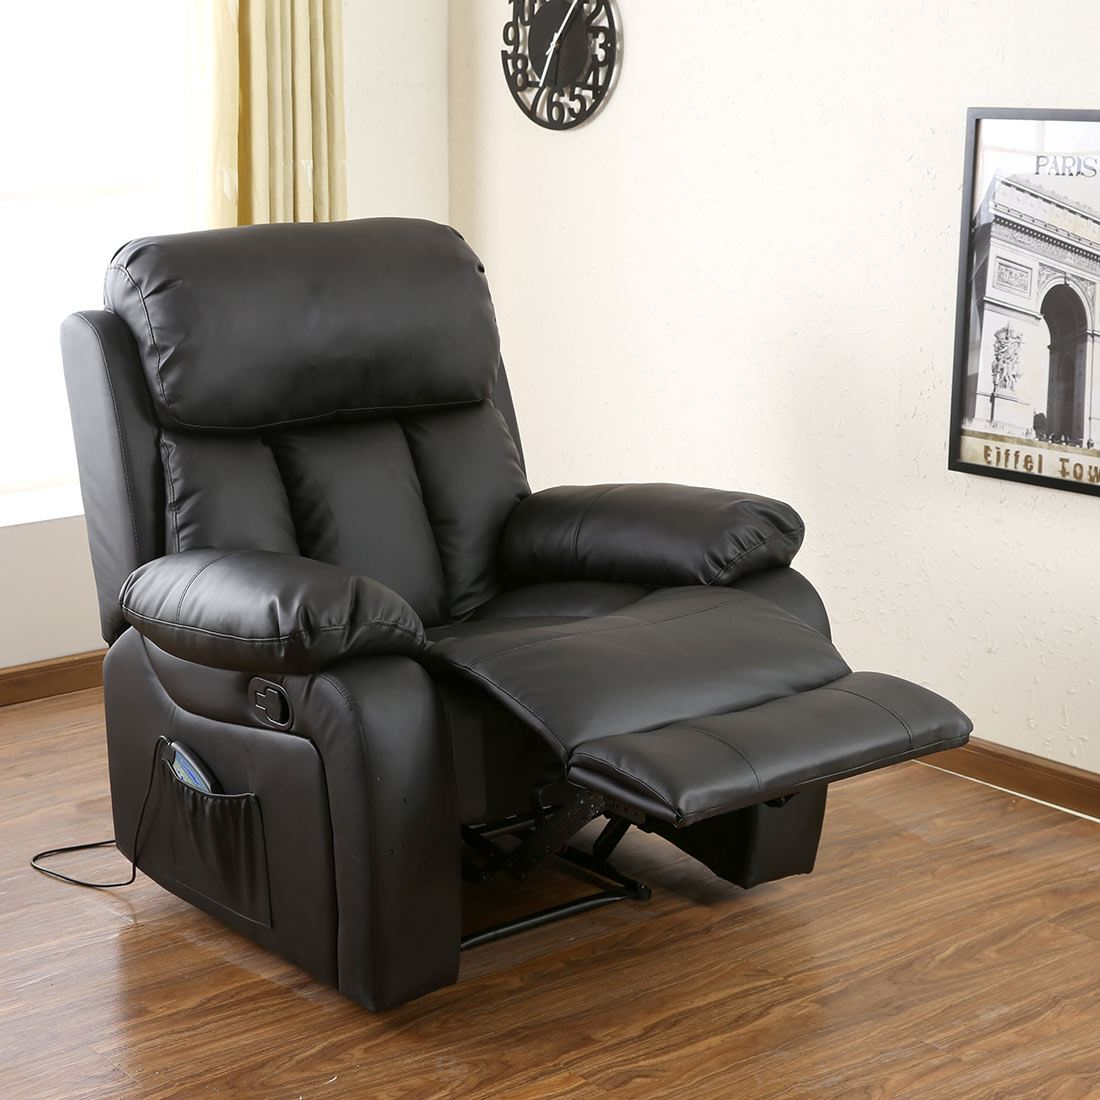 recliner gaming chair ace bayou bean bag chester heated leather massage sofa lounge